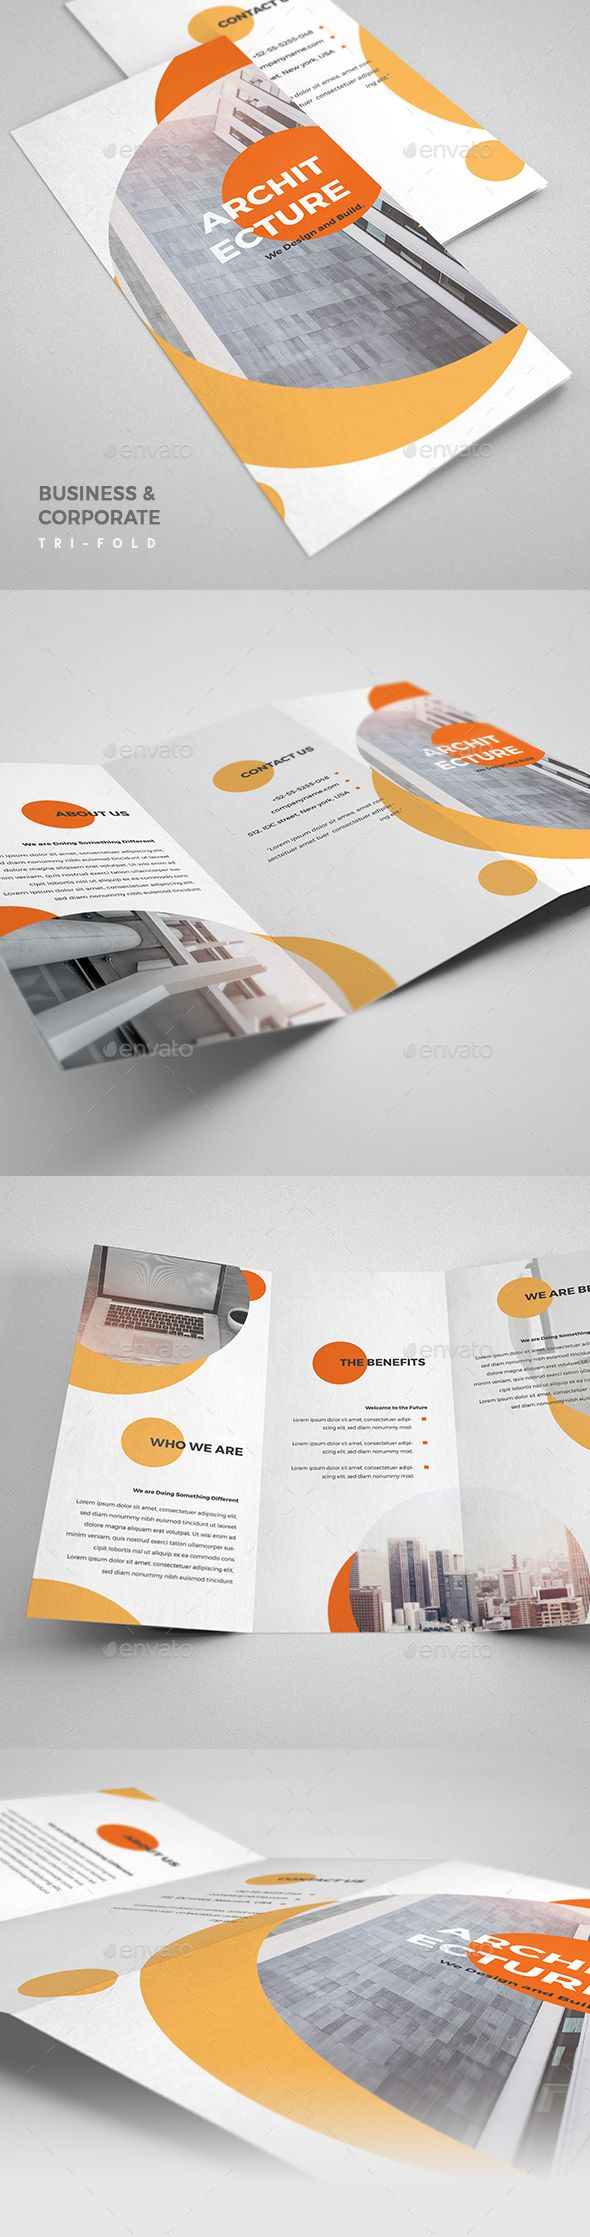 Architecture Design Tri-Fold Brochure